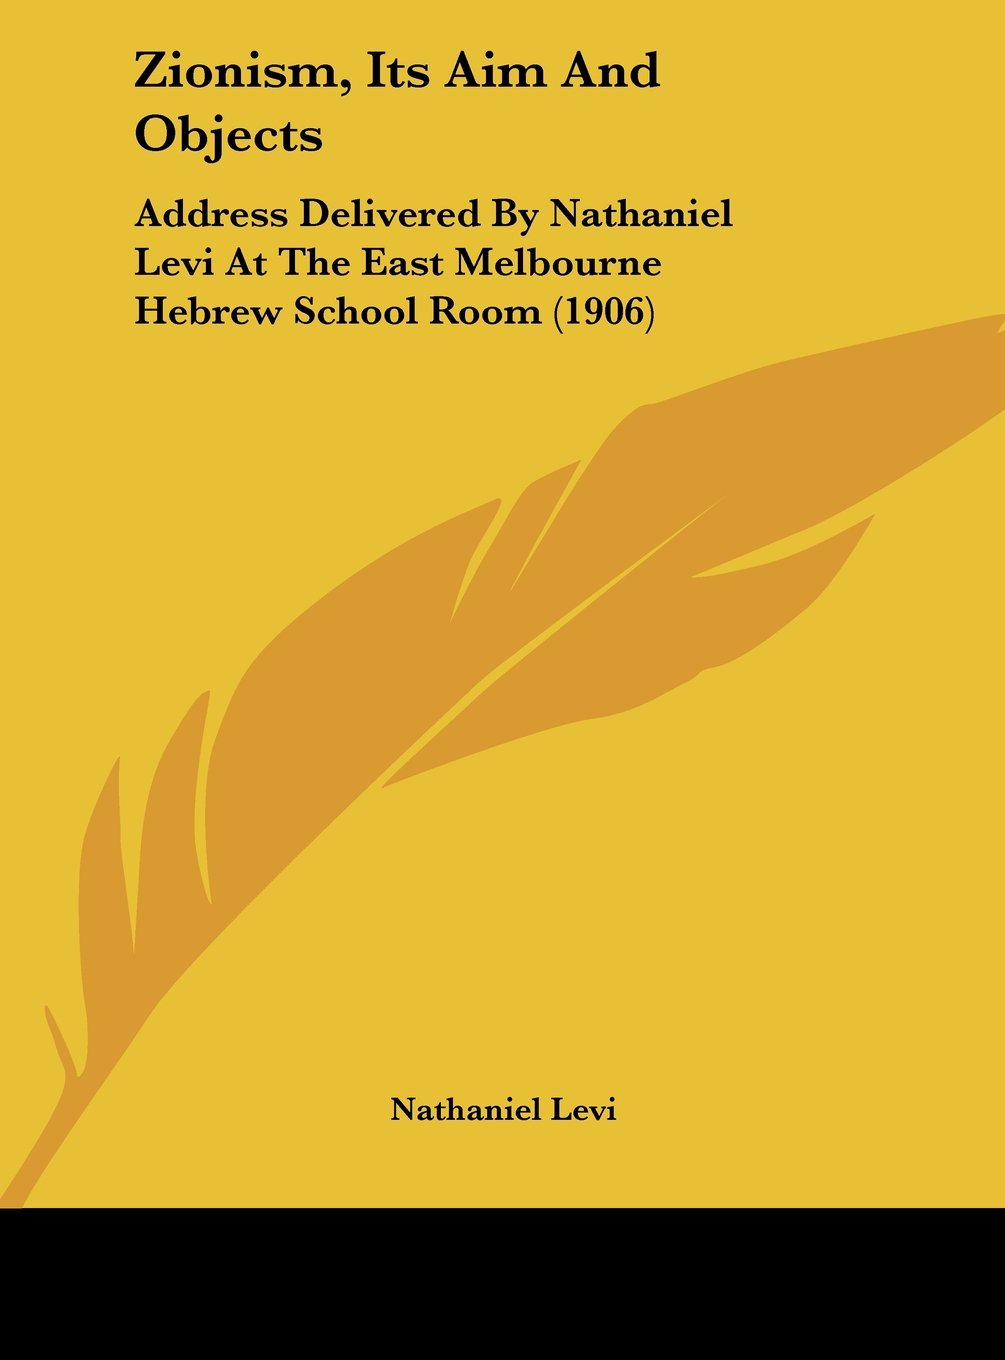 Zionism, Its Aim And Objects: Address Delivered By Nathaniel Levi At The East Melbourne Hebrew School Room (1906) ebook